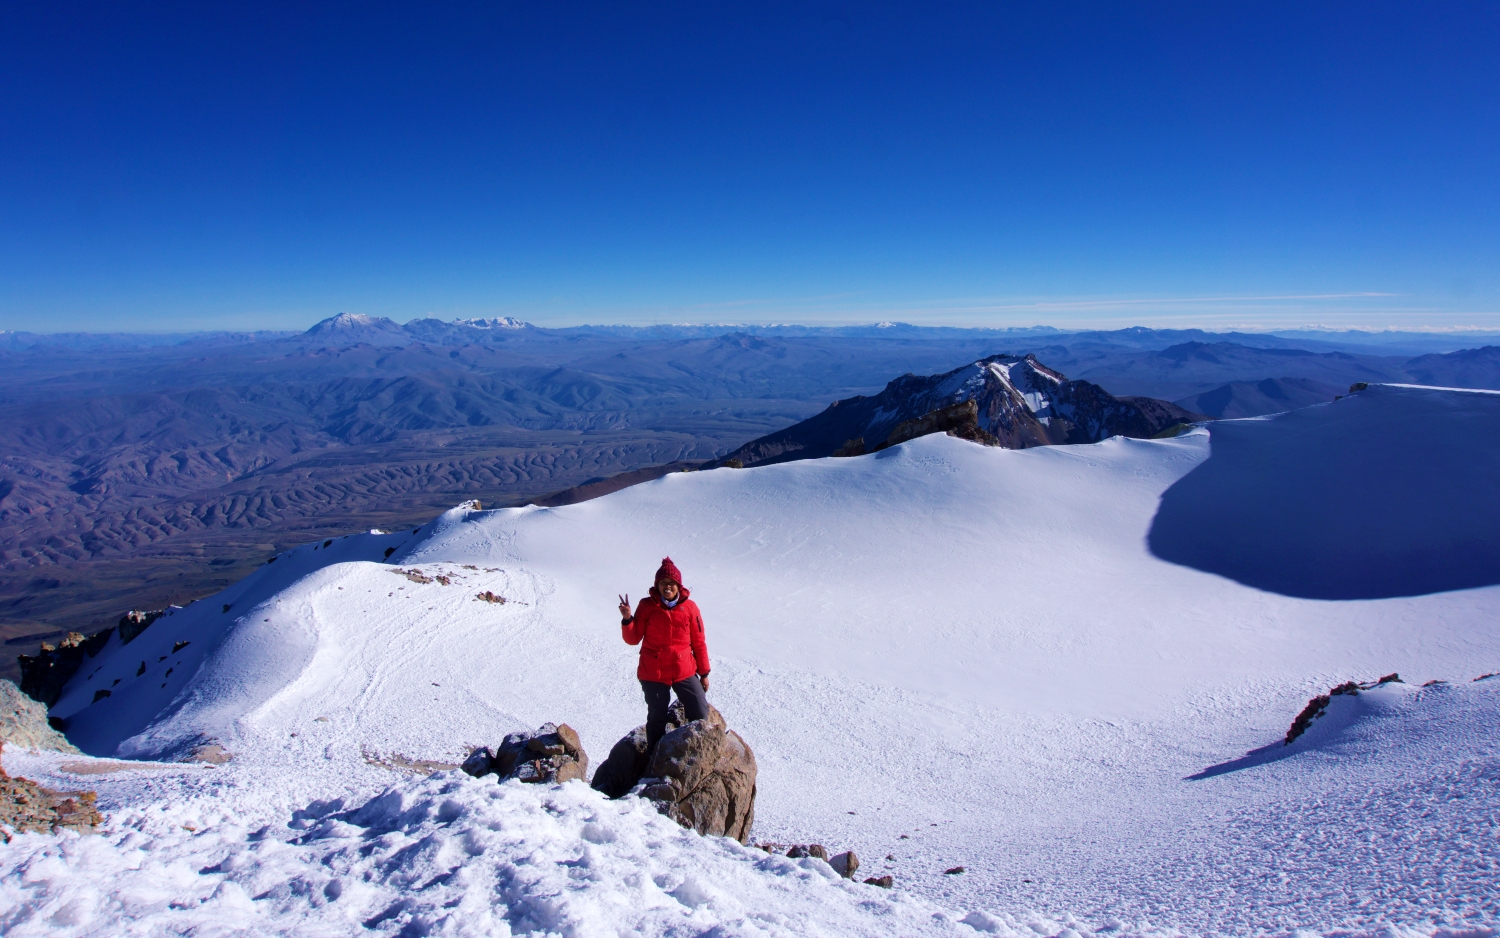 Getting to the summit of Chachani was my hardest climb yet, but the views were definitely worth it!